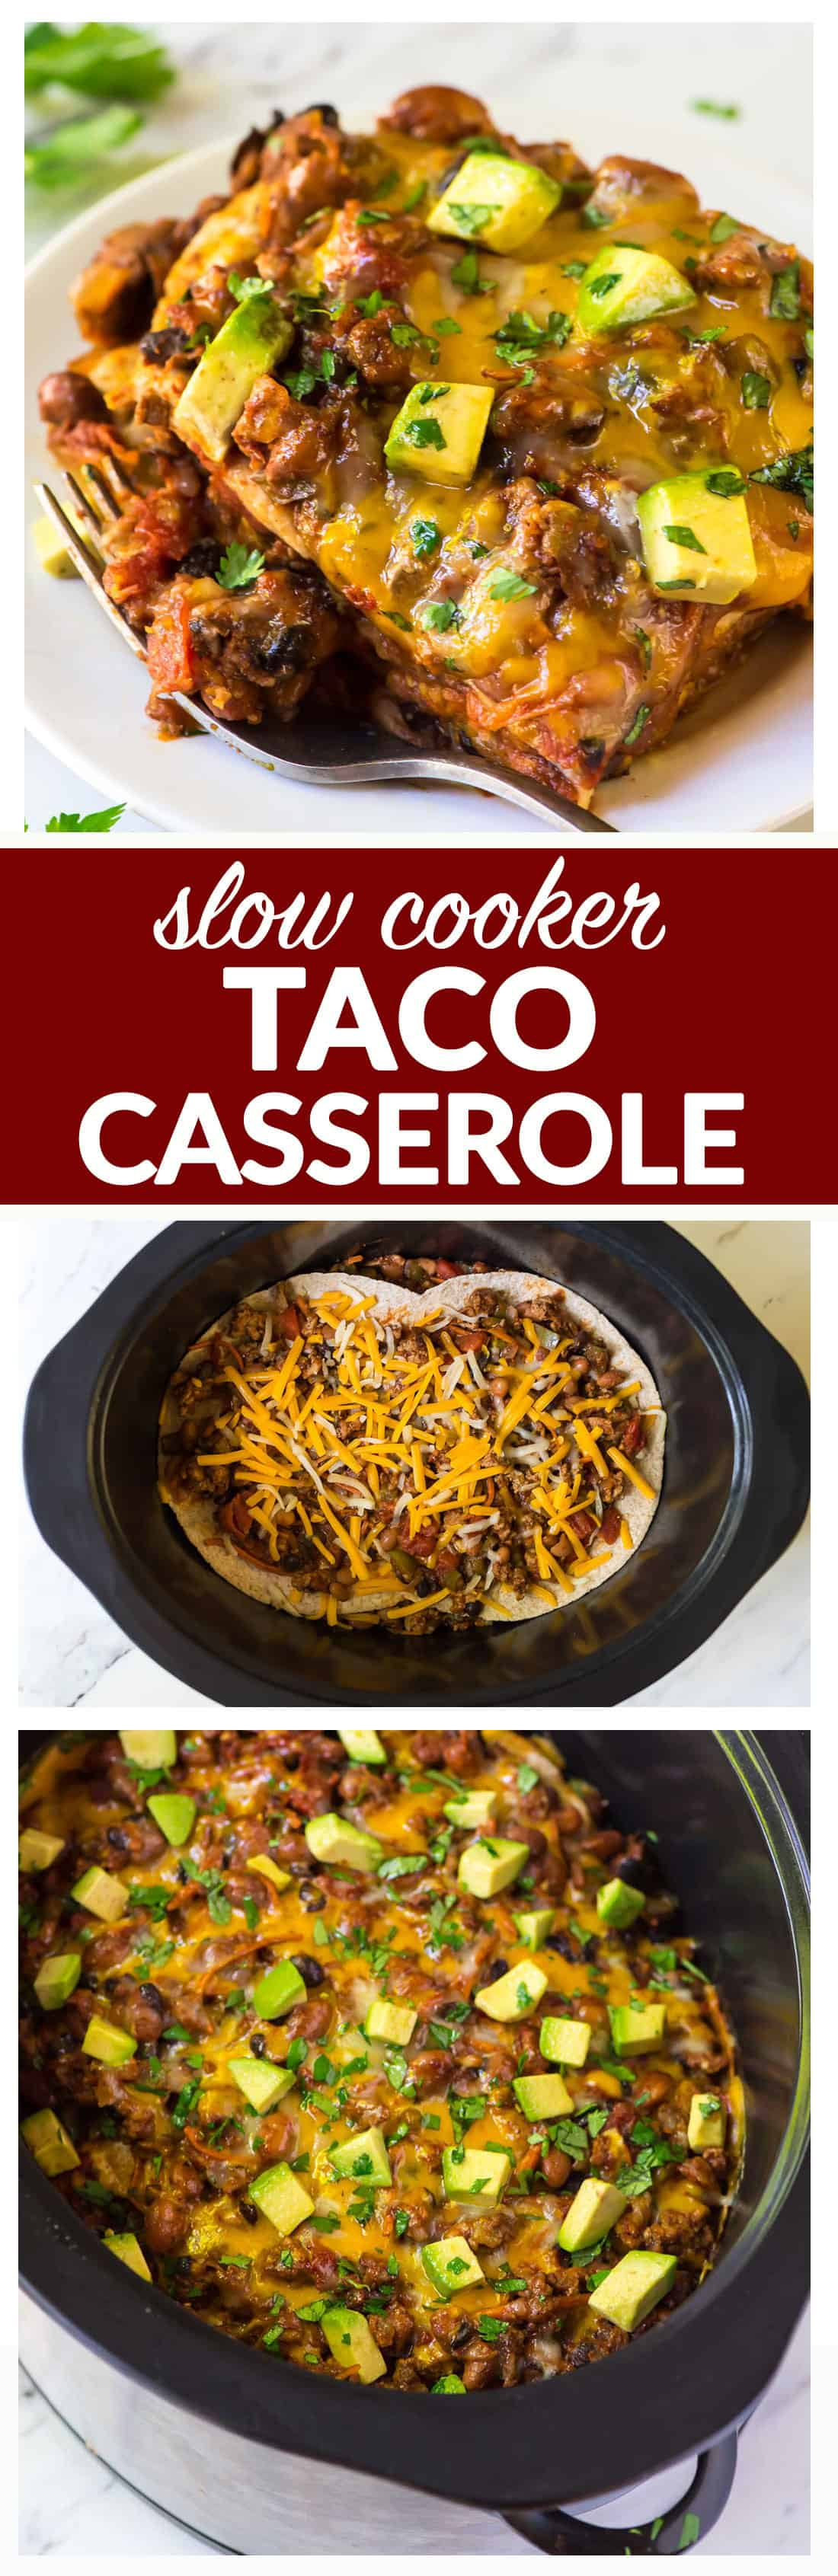 Easy Slow Cooker Taco Casserole – Layers of tortillas, cheese, beans, ground chicken or turkey, and veggies, cooked until hot, bubbly, and delicious! Mexican lasagna made in a slow cooker is an easy weeknight dinner, one of the best crock pot recipes for Taco Tuesdays, and it's a healthy recipe! #slowcooker #crockpot #Mexicanrecipes #tacos #casserole